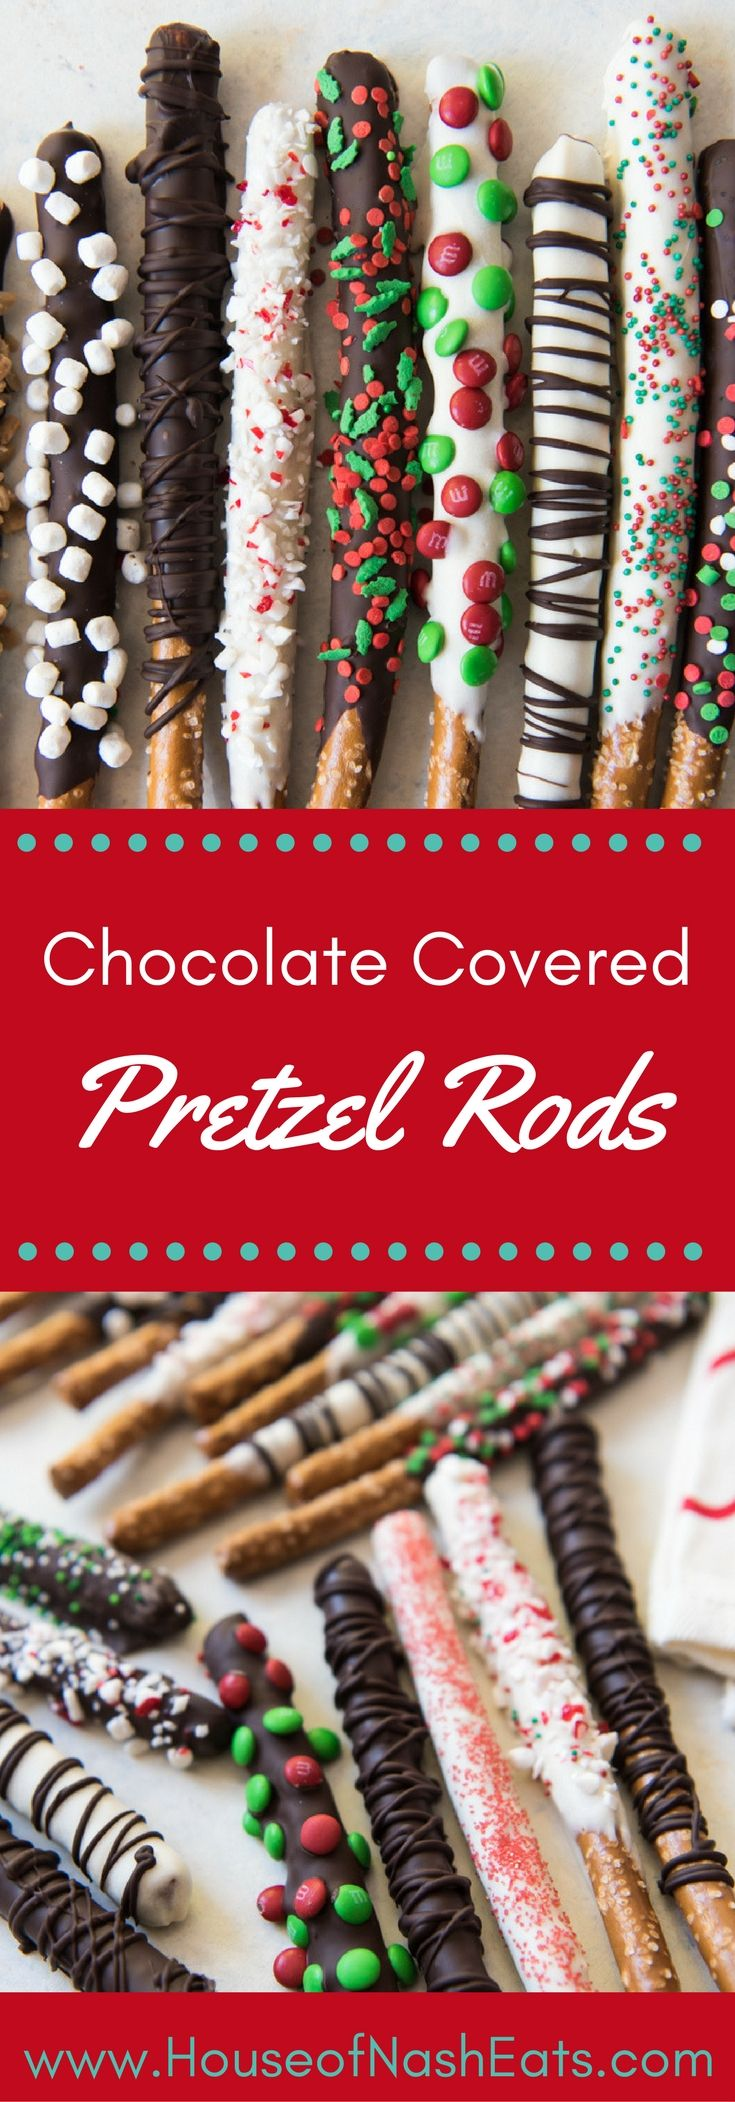 Chocolate Covered Pretzel Rods are a sweet and salty treat that is easily customizable for any holiday or occasion and fun for kids to help make too! These Christmas chocolate covered pretzel rods are going to be packaged up and shared as gifts with my girls' school friends this year! #pretzels #chocolate #Christmas #sprinkles